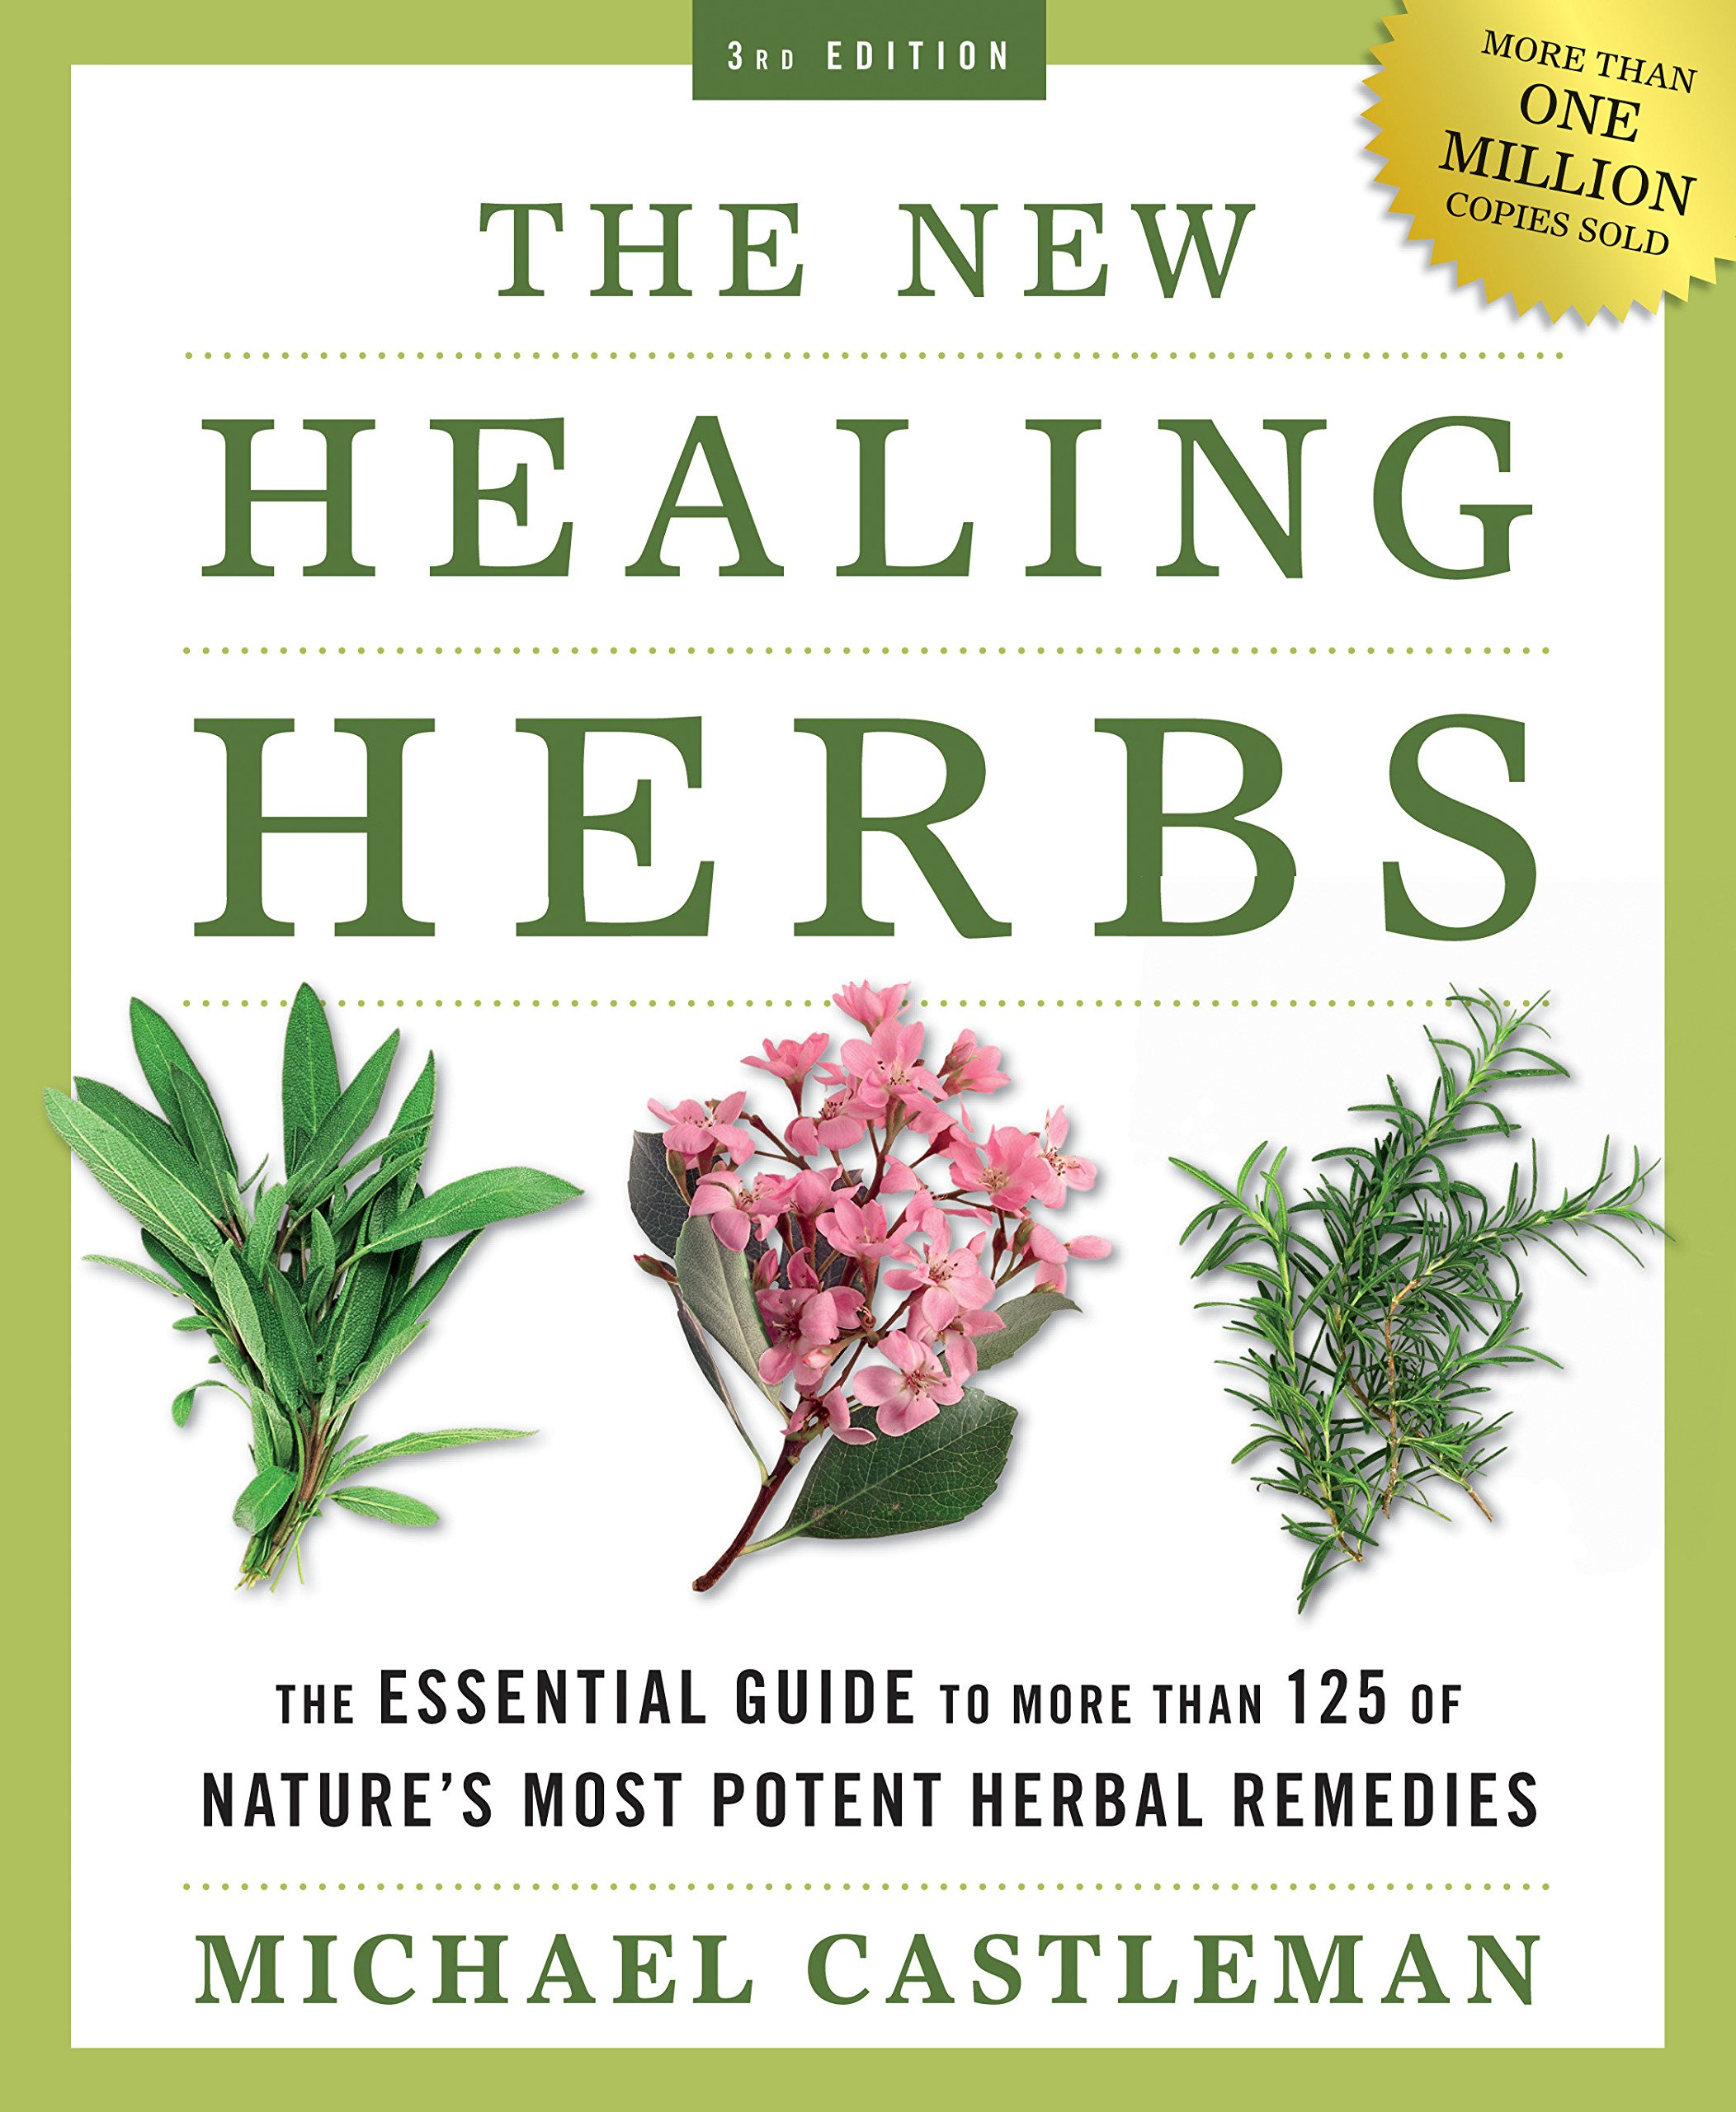 Download The New Healing Herbs: The Essential Guide to More Than 125 of Nature's Most Potent Herbal Remedies ebook